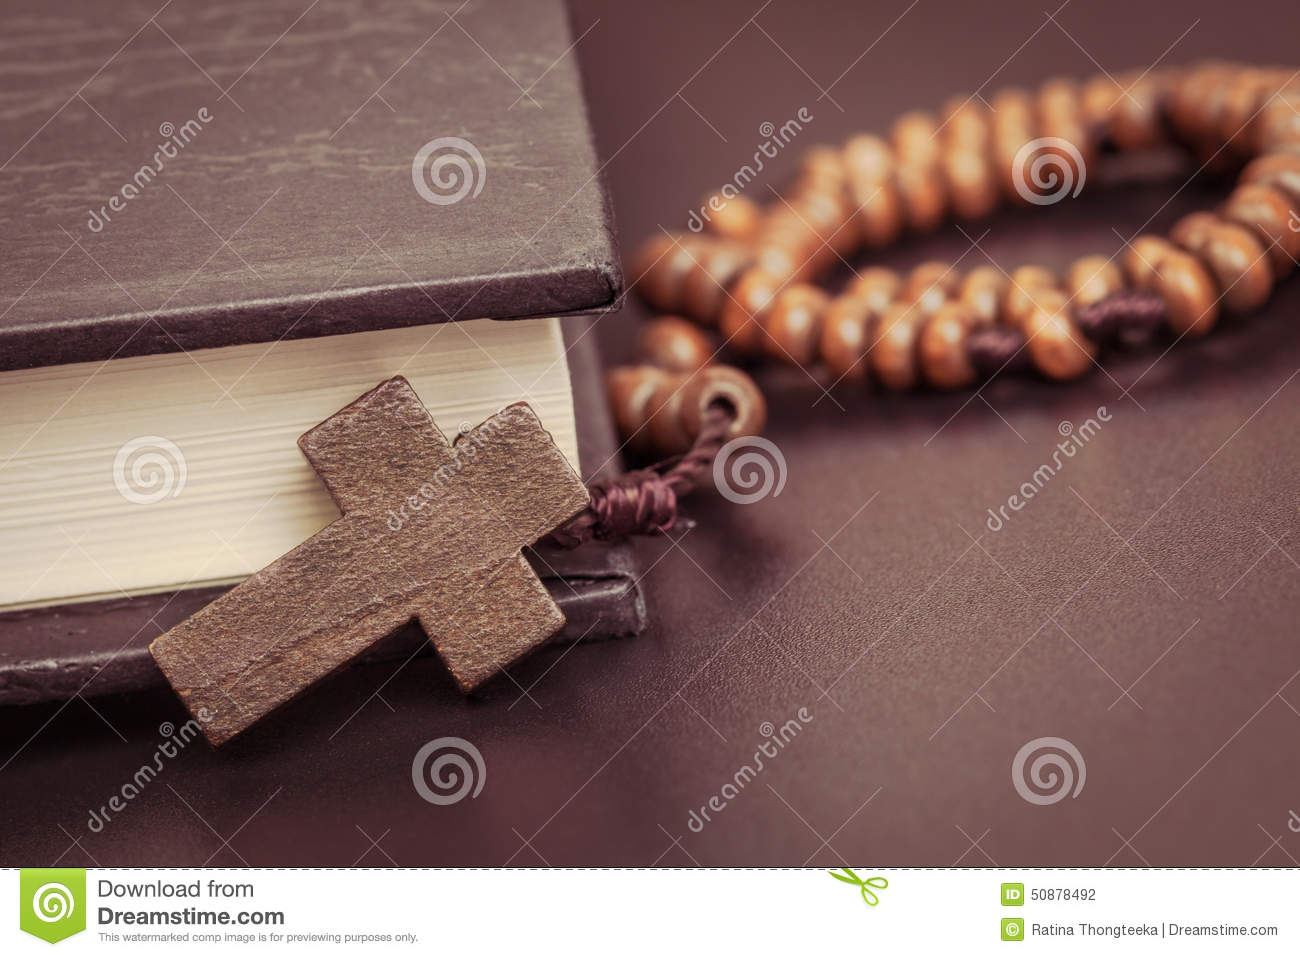 a paper on concept of god in catholic religion Christianity makes a series of claims about god and man: that jesus of nazareth   an article on the american atheists website notes that what is incredible   has two thousand years of prayer and study behind the beliefs it holds to be true.